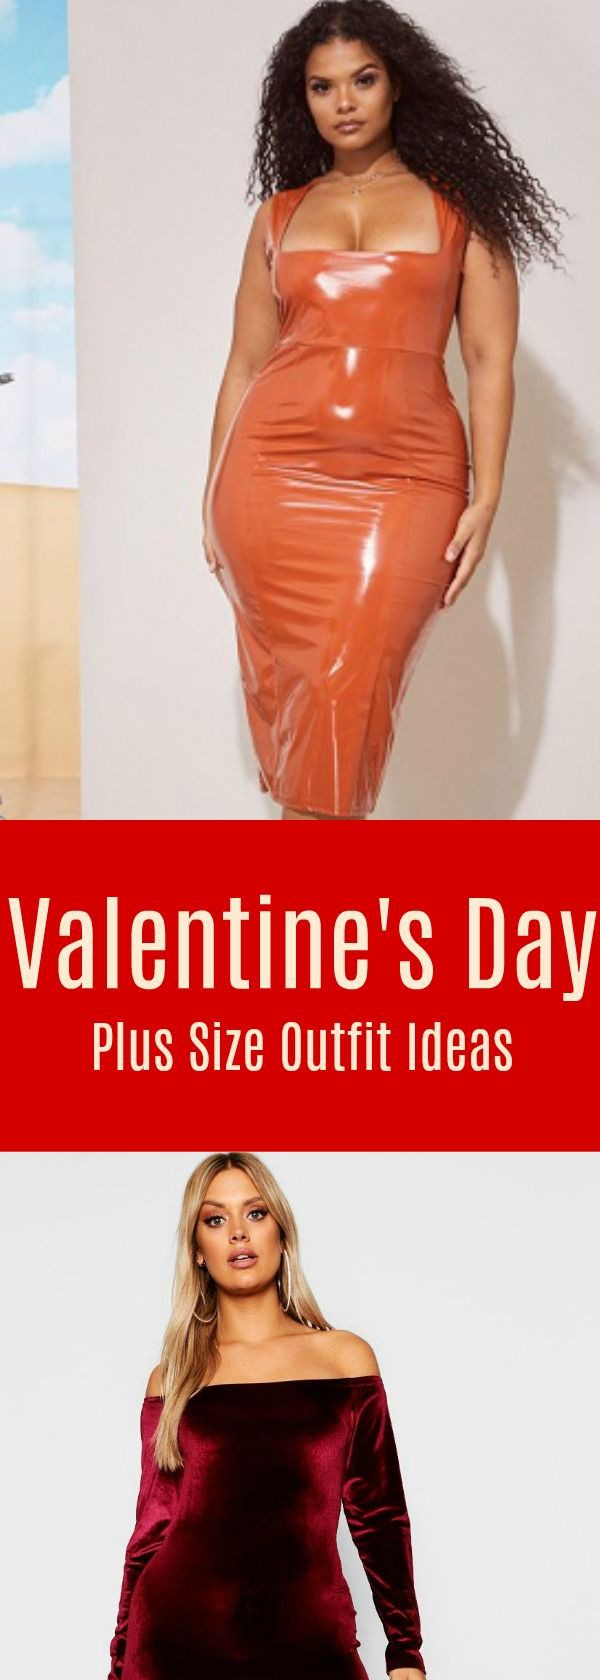 Orange and tan colour outfit ideas 2020 with latex clothing, leather, jeans